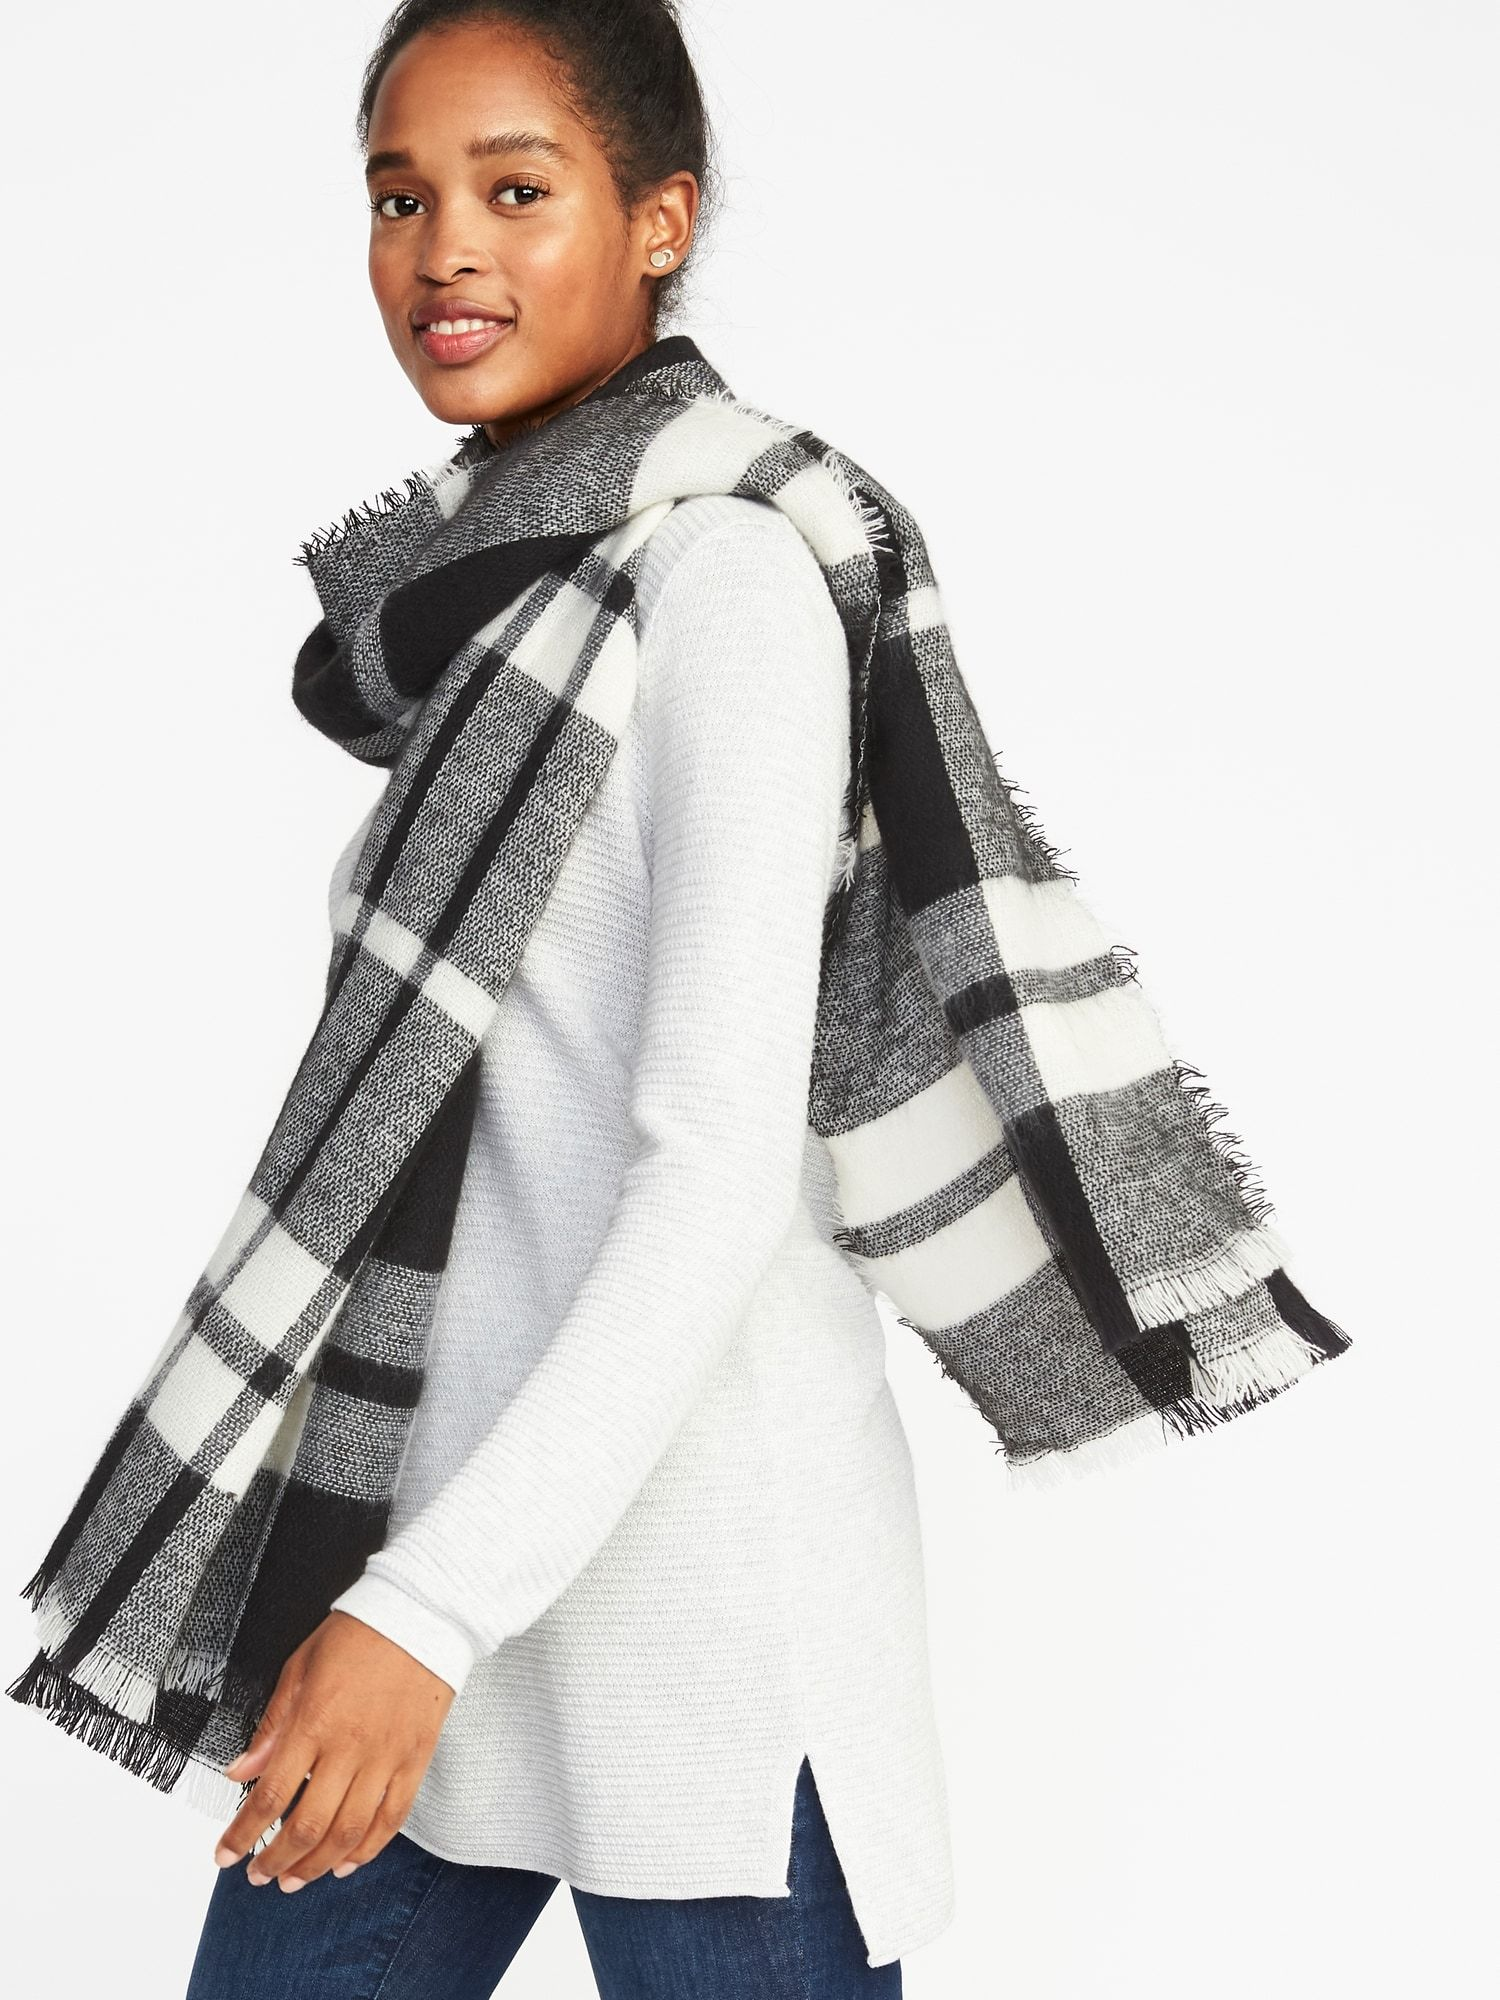 Flannel Blanket Scarf For Women Old Navy Trendy Fashion